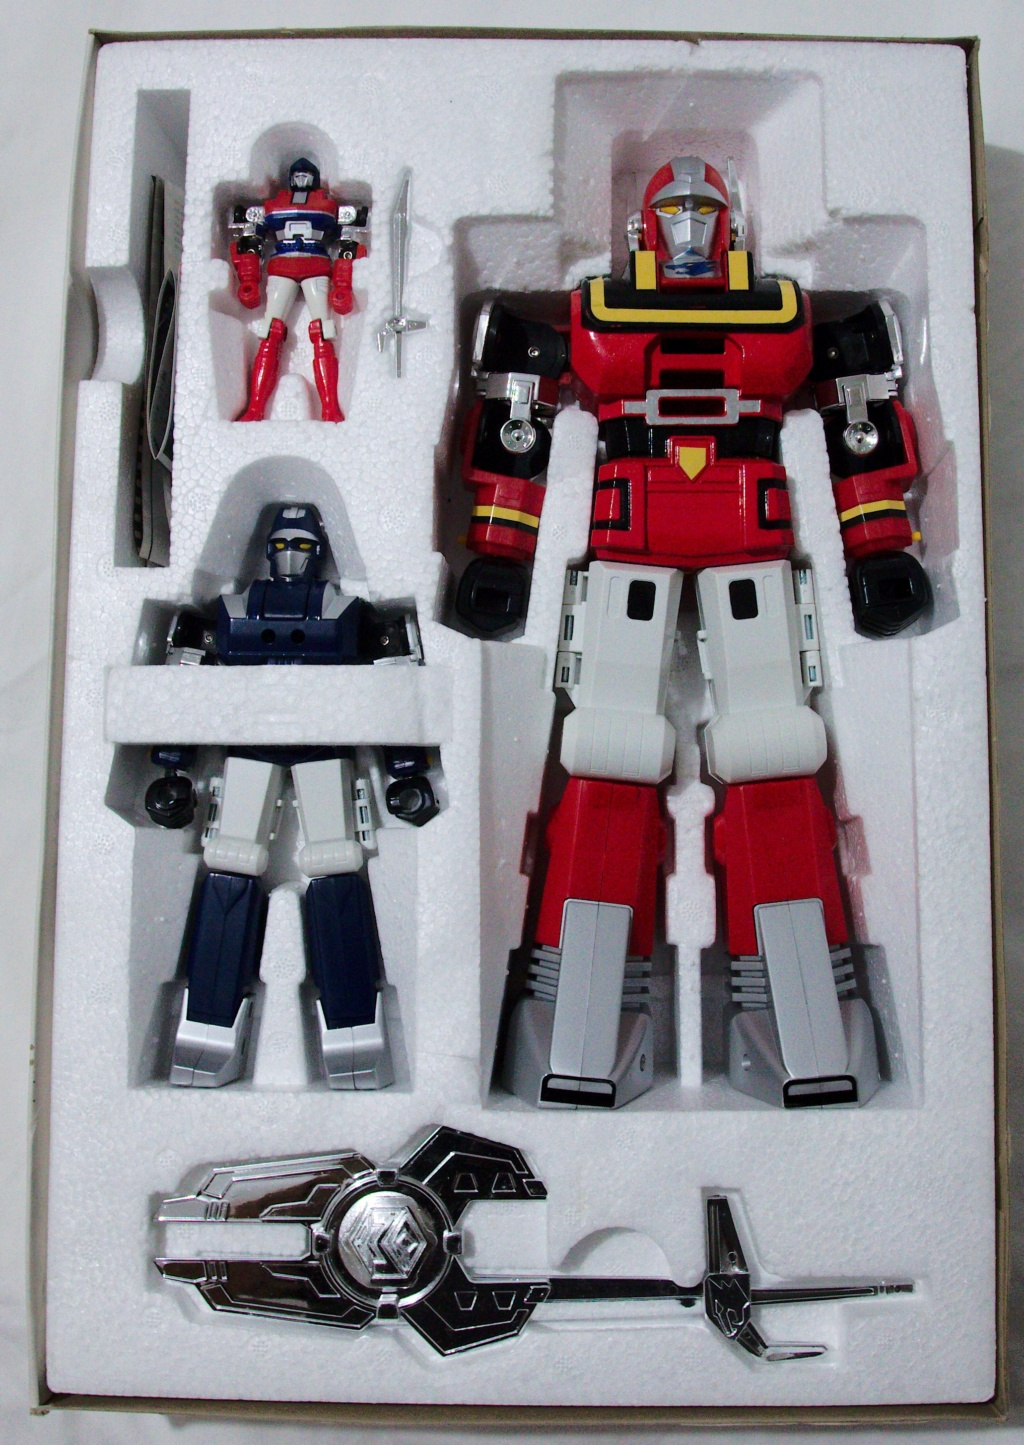 Pilgrim's collection (Gobots, Transformers...) - Page 31 Img_8818